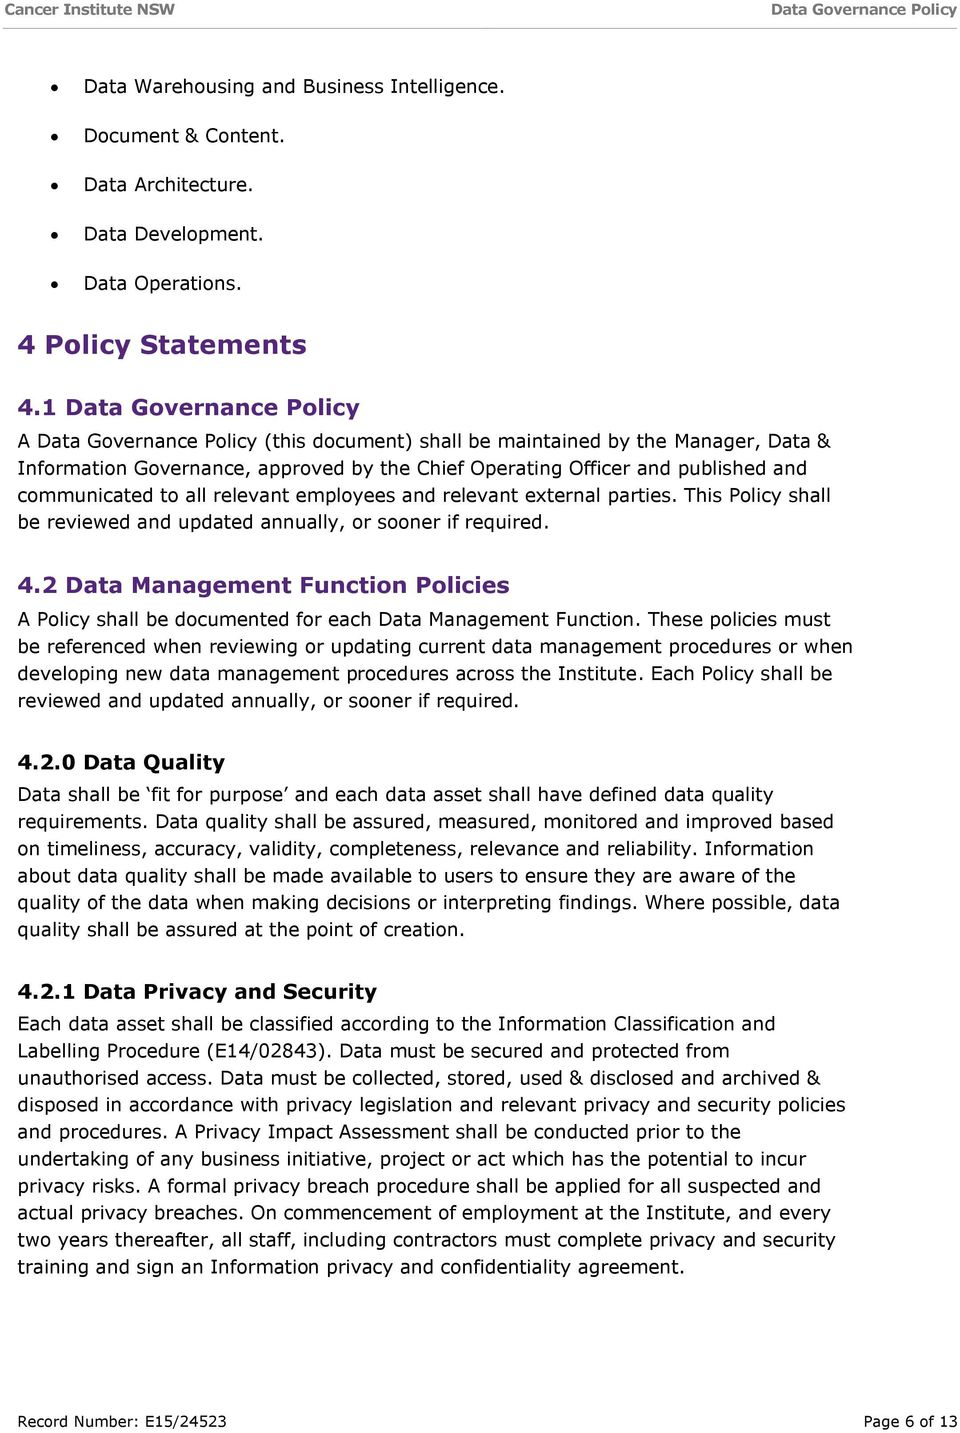 external parties. This Policy shall be reviewed and updated annually, or sooner if required. 4.2 Data Management Function Policies A Policy shall be documented for each Data Management Function.